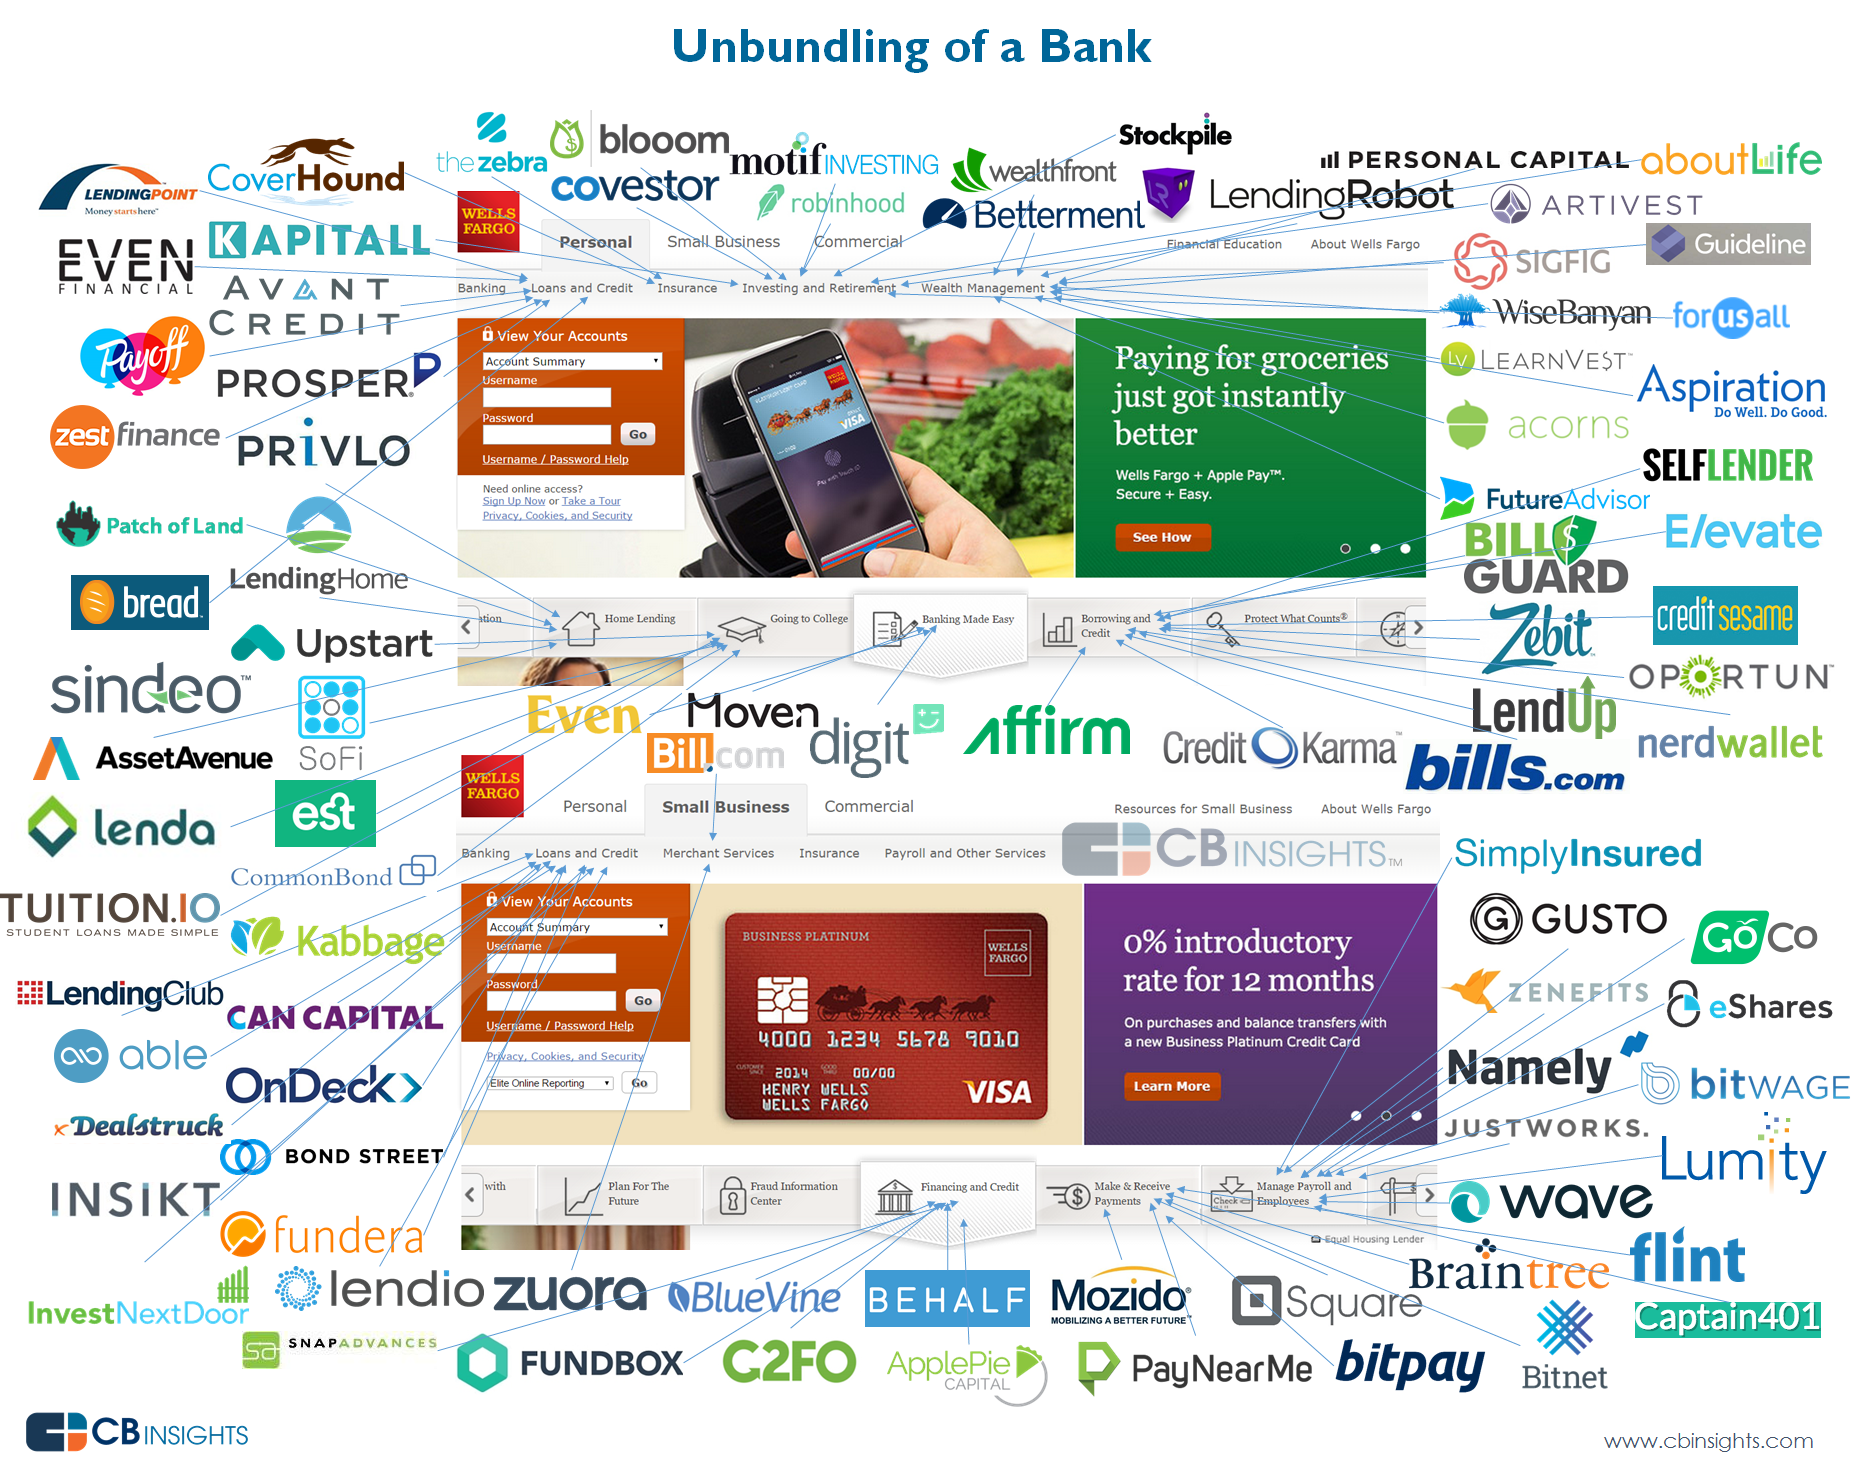 Disrupting Banking The FinTech Startups That Are